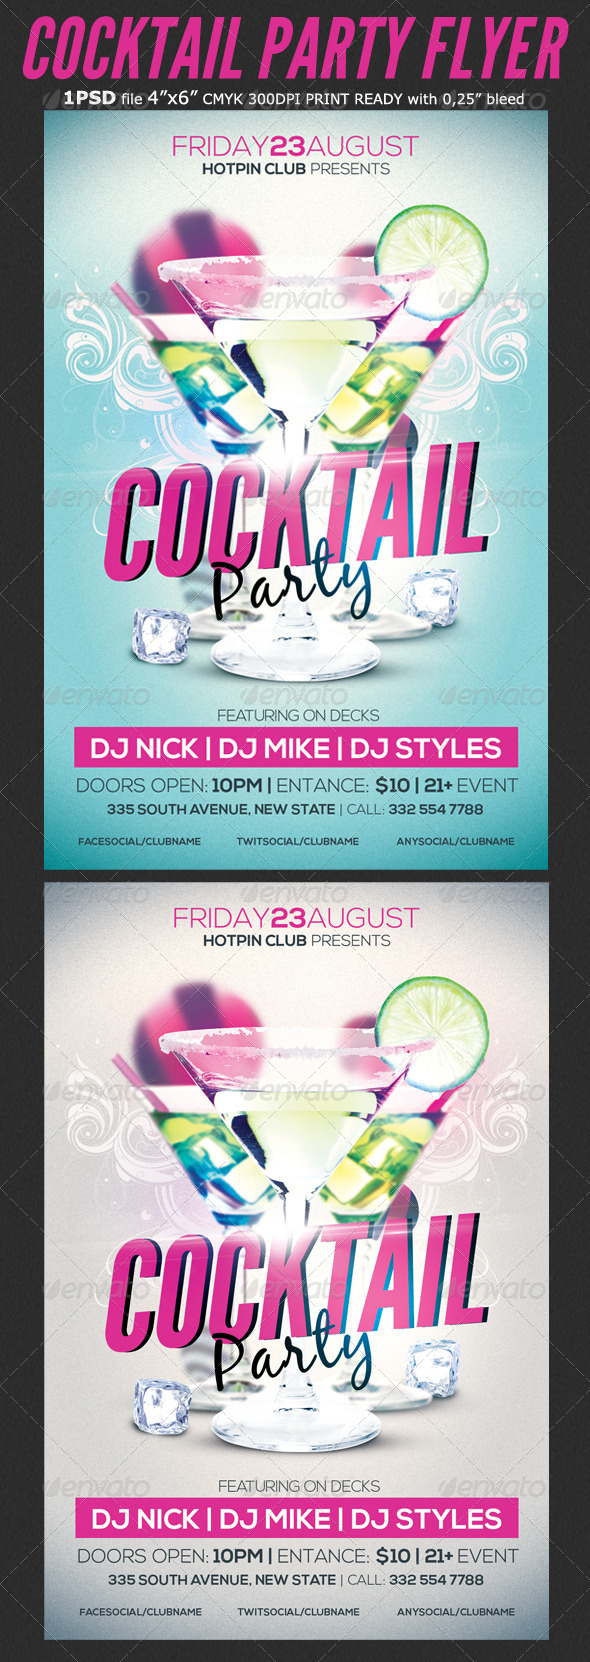 Cocktail Party Flyer Template 2 - Clubs & Parties Events